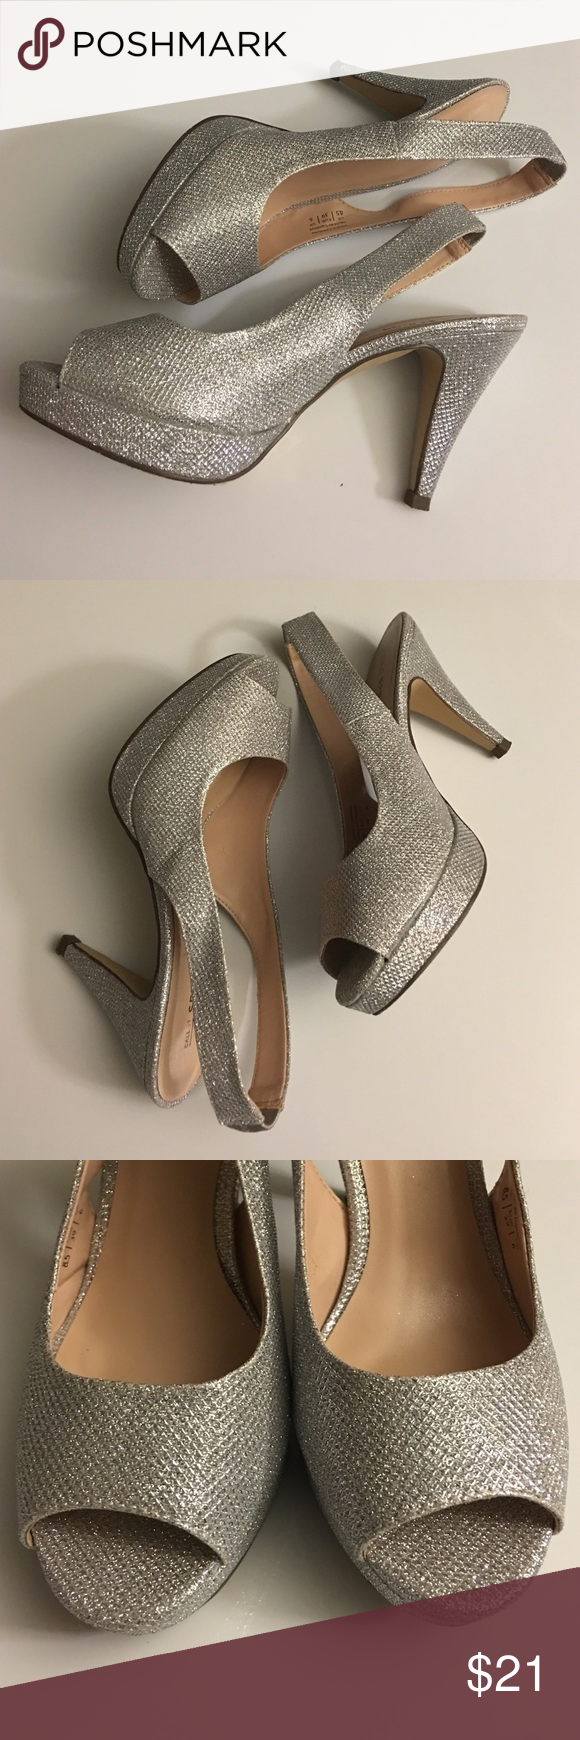 Call It Spring Heels The Evelaine in silver. Worn once to my sister's wedding last month for a few hours. I'll probably never need them again. Aren't homecoming's coming up right around the corner?! Call It Spring Shoes Heels